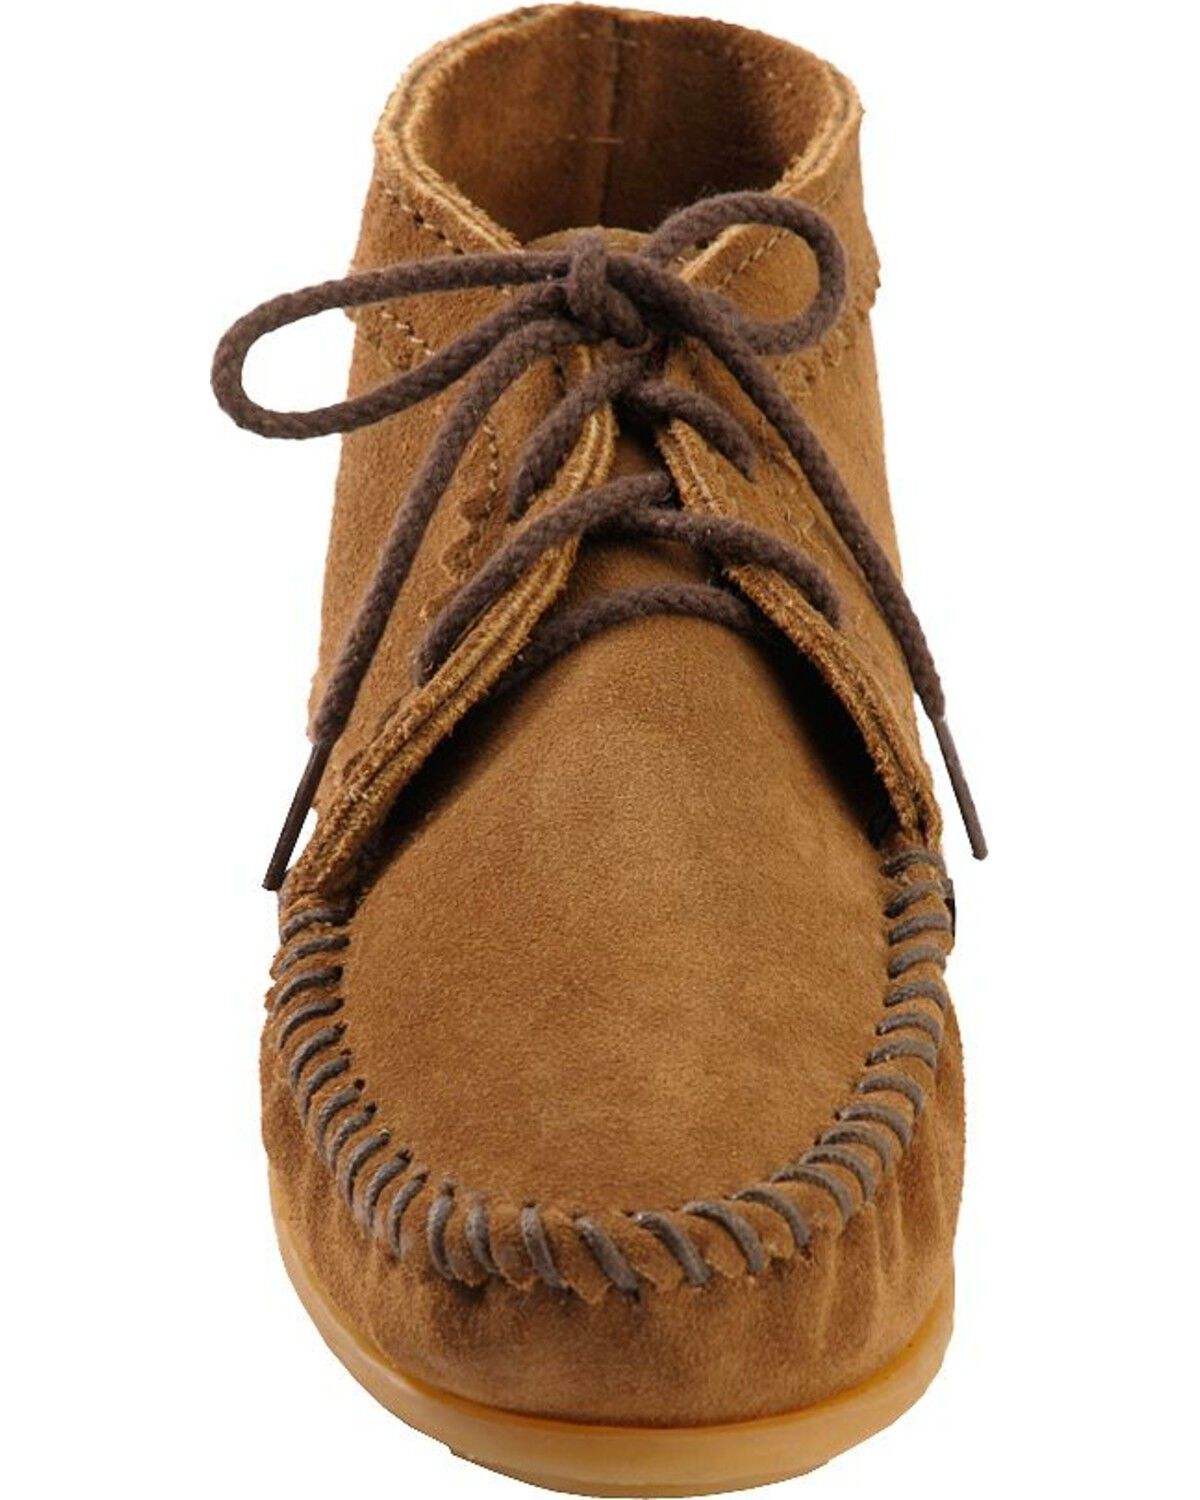 moccasins boots